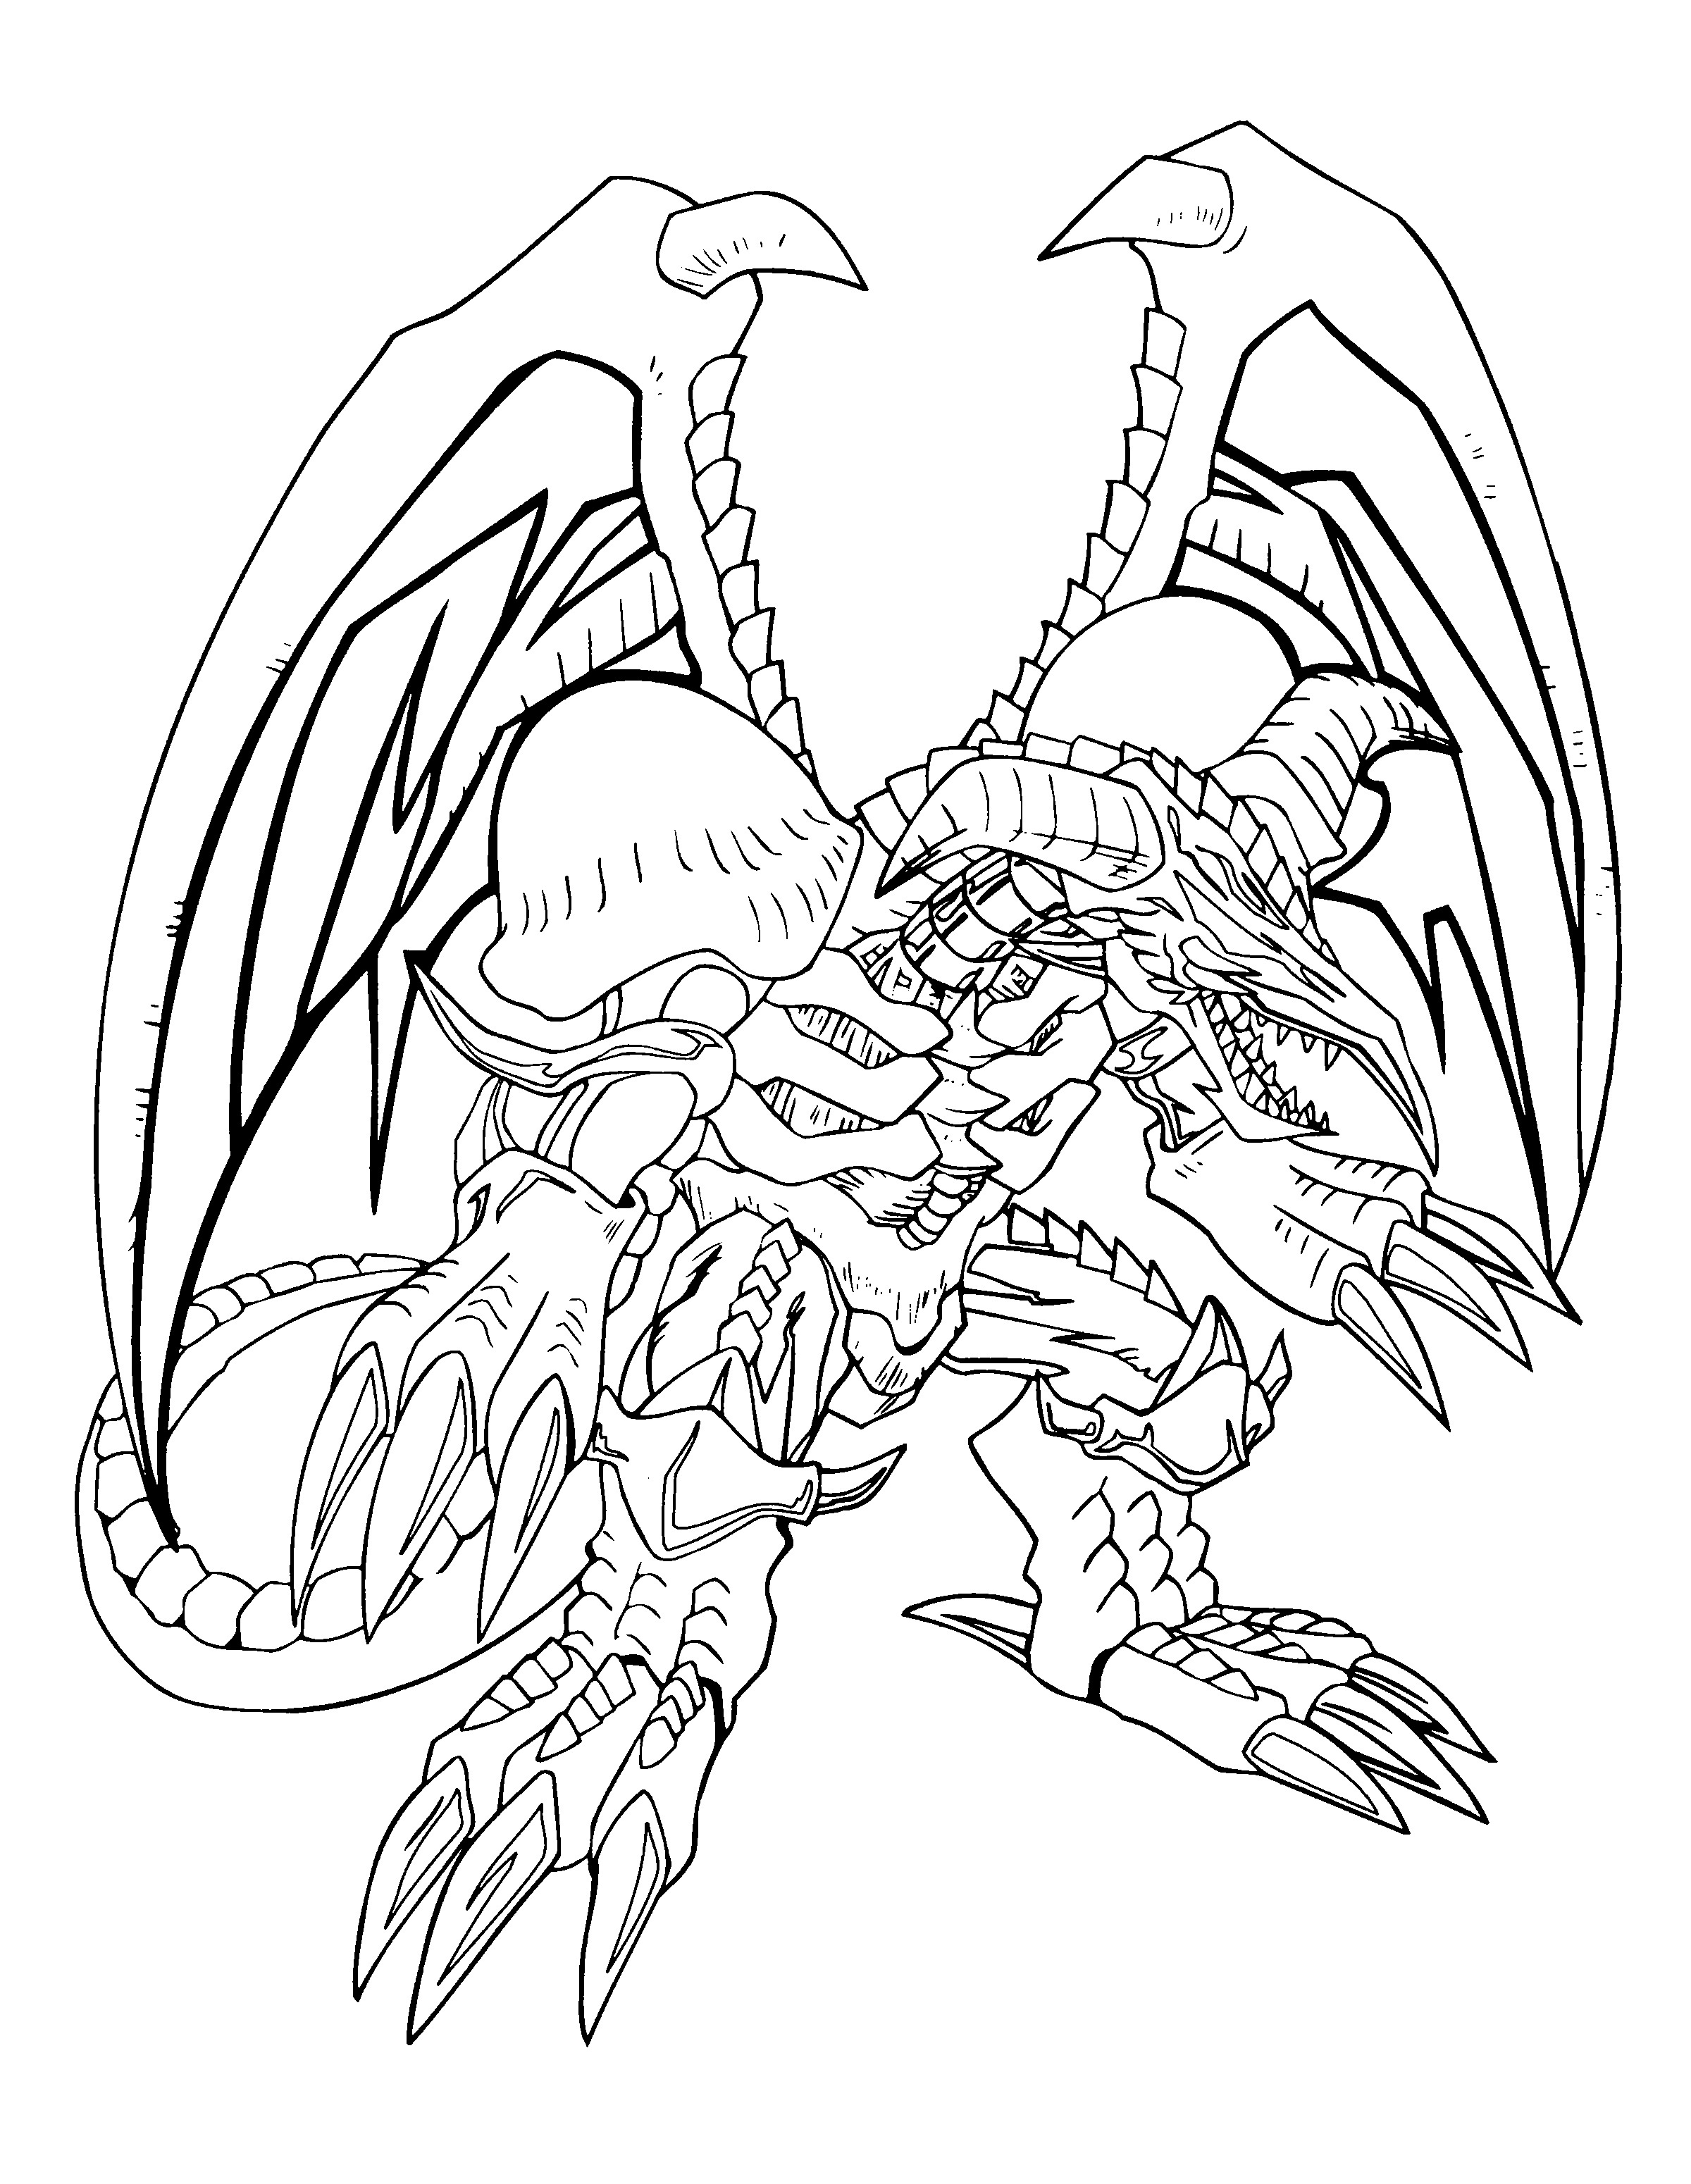 Free coloring pages yugioh - Yugioh Monsters Coloring Pages Free